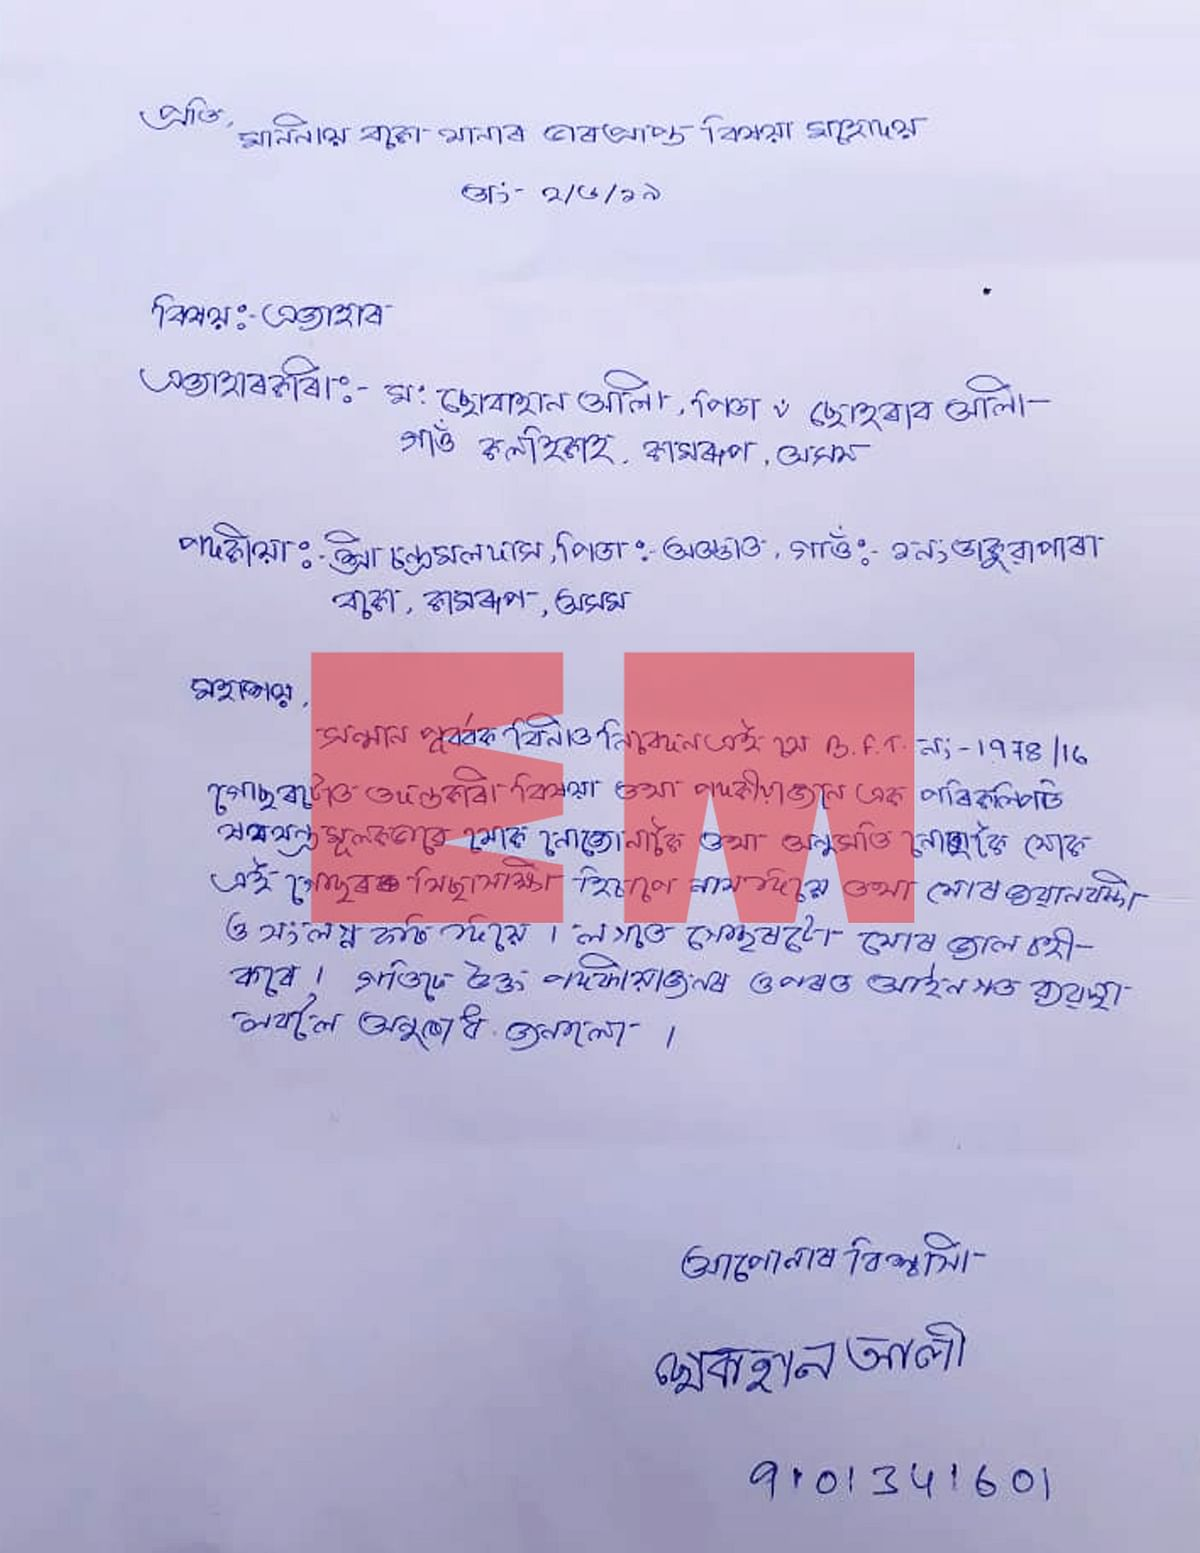 FIR filed by Sobahan Ali against against the then SI of border police, Chandramal Das